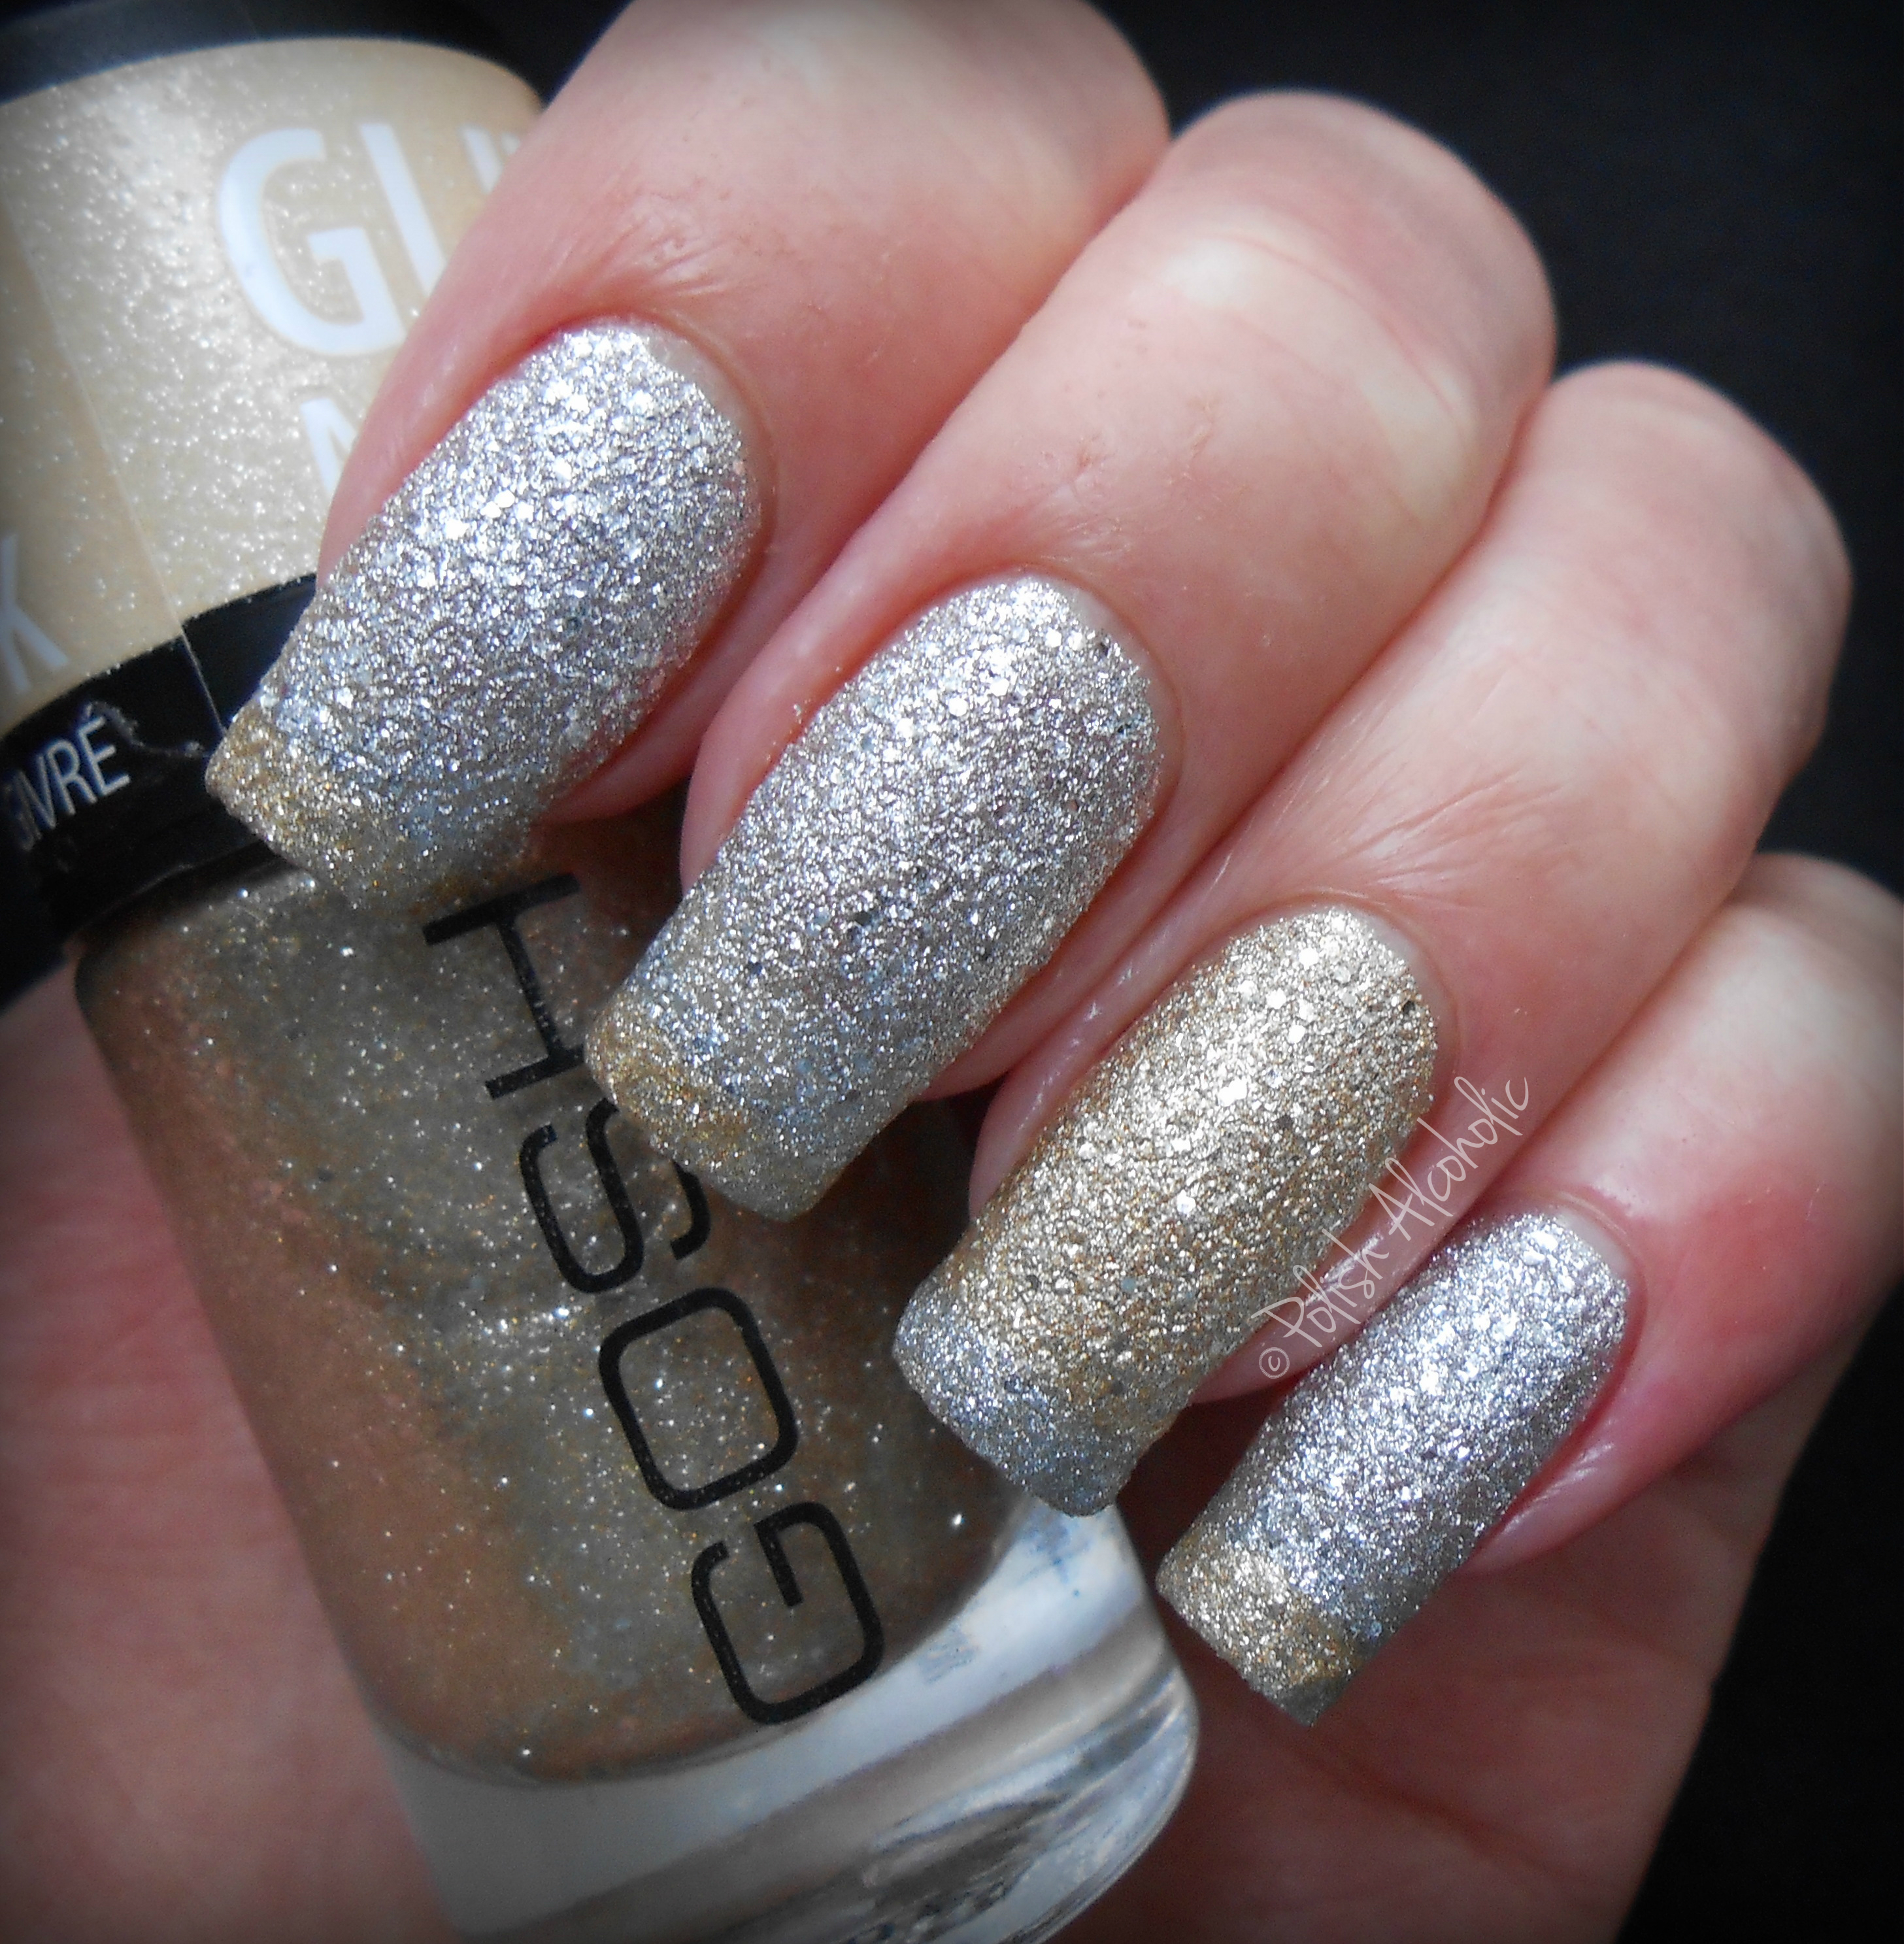 Gosh: Frosted Silver & Frosted Gold | Polish Alcoholic